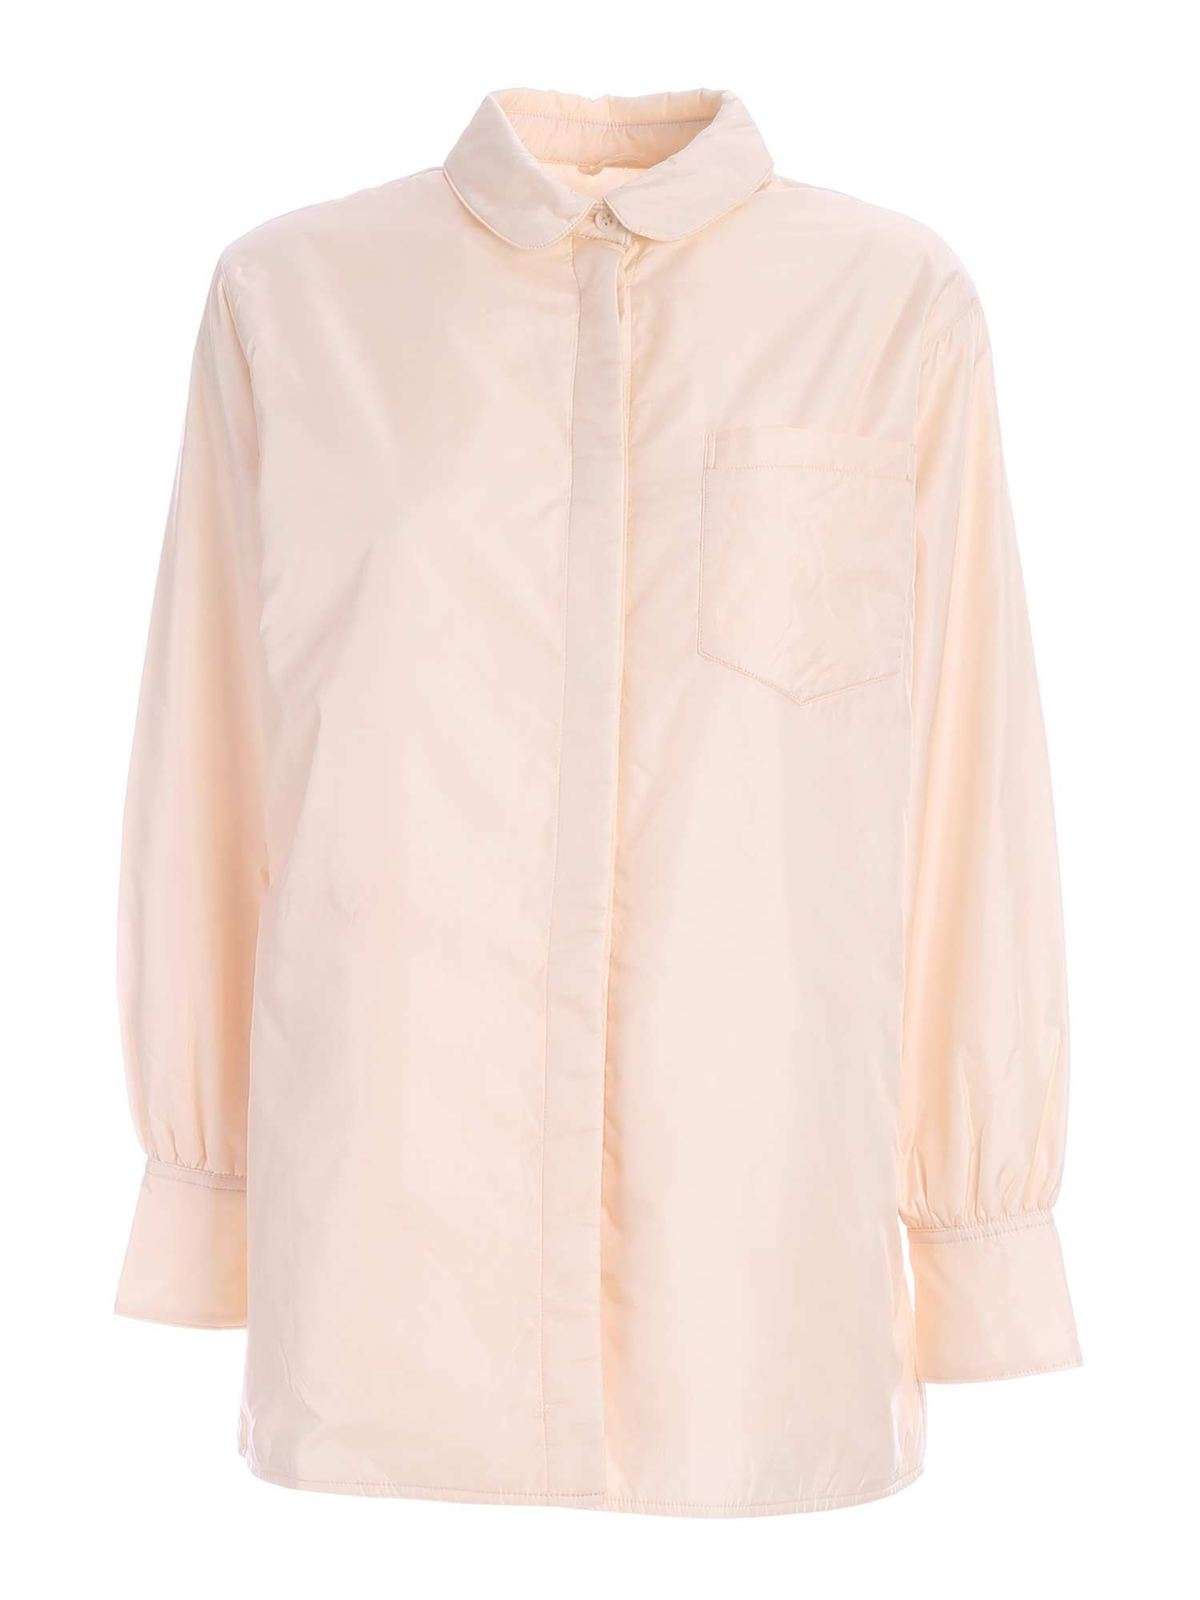 Aspesi PIADINA SHIRT IN CREAM COLOR